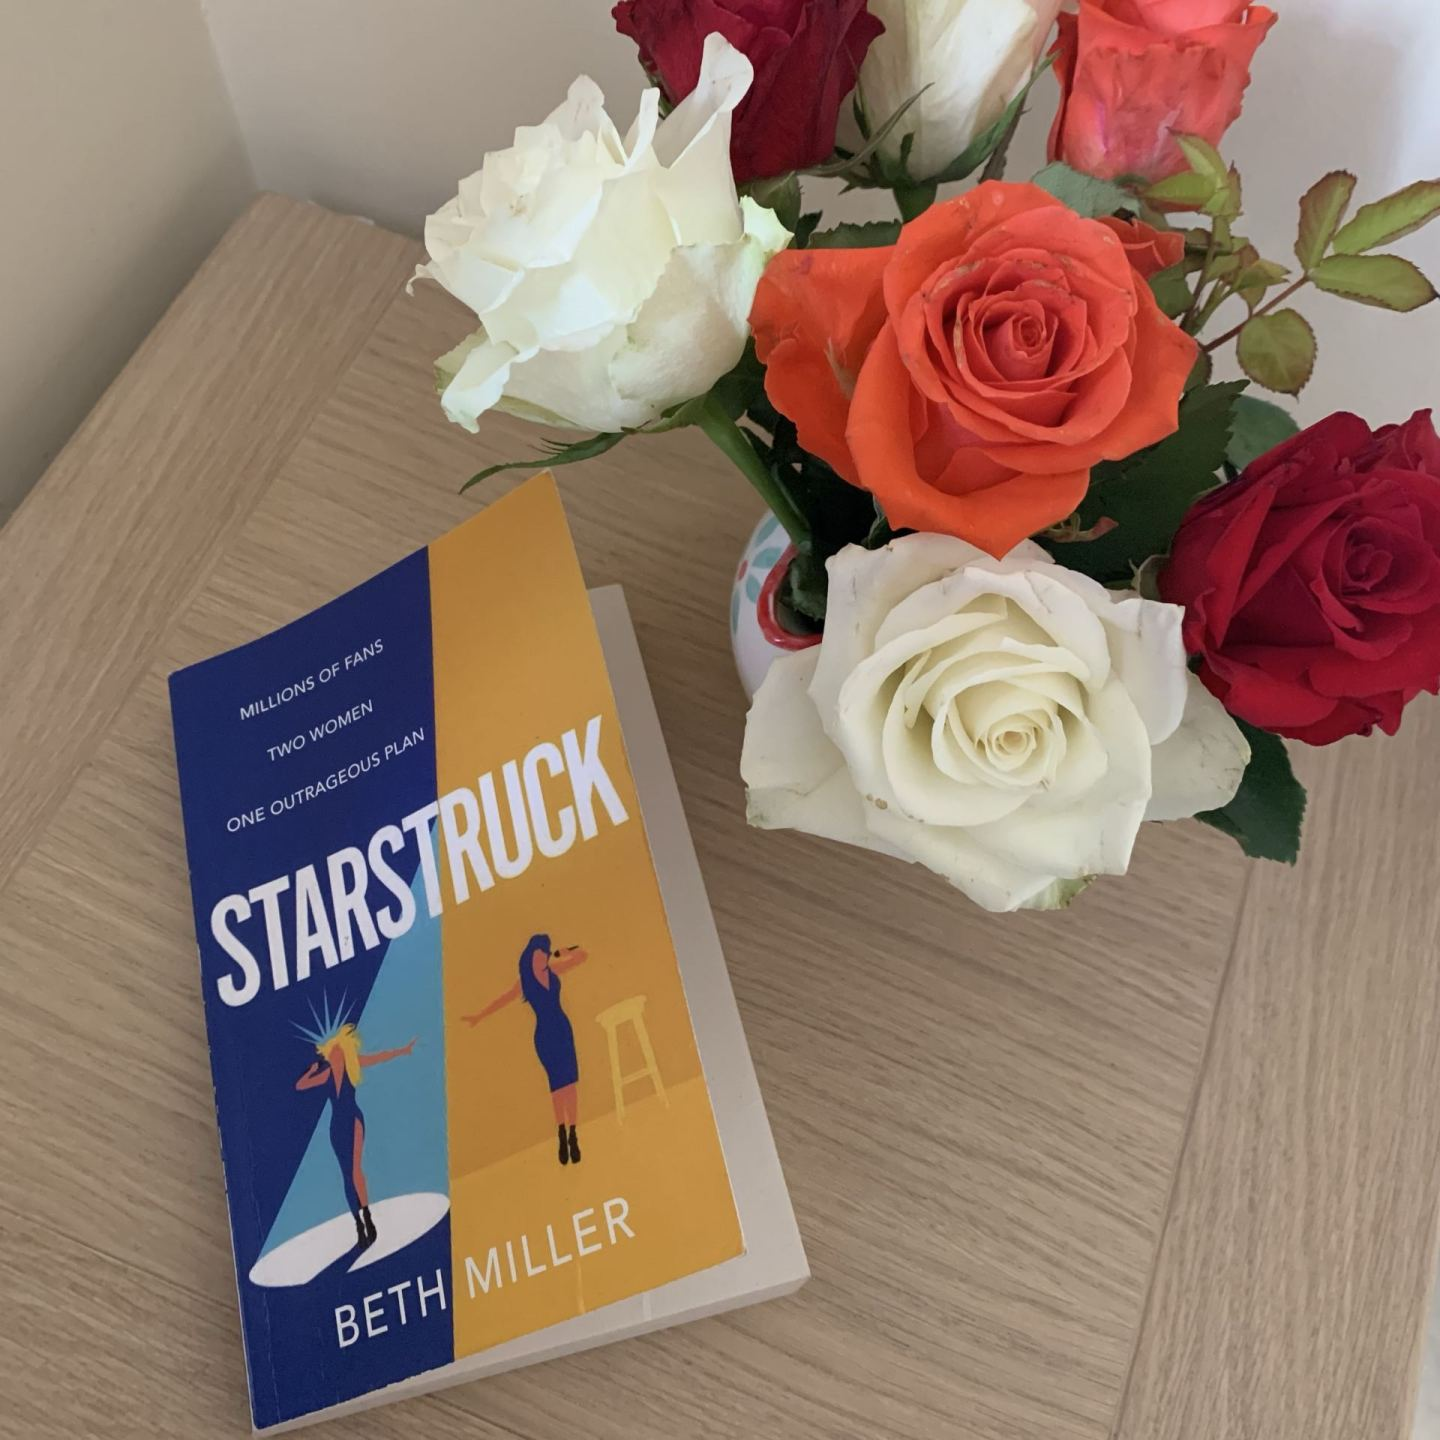 Starstruck; full of humour and charm